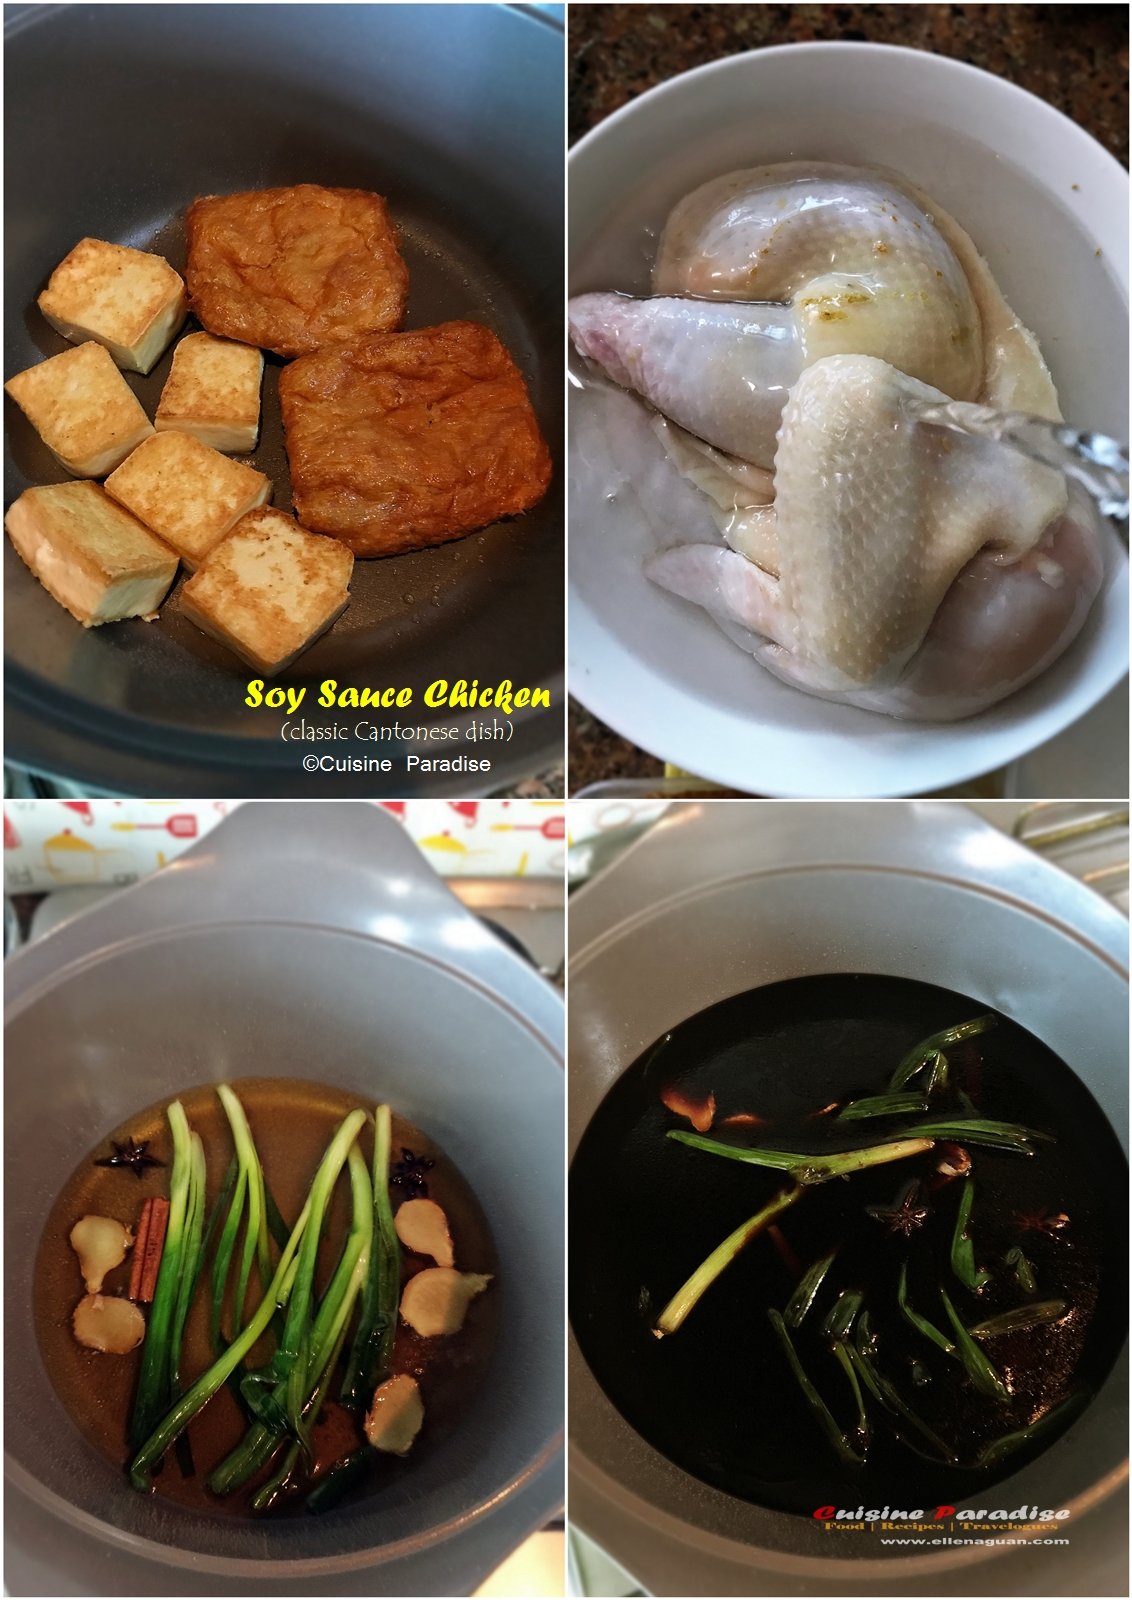 Cuisine paradise singapore food blog recipes reviews and travel 1 cinnamon stick 2 star anise 8 slices ginger 5 cloves garlic optional forumfinder Gallery